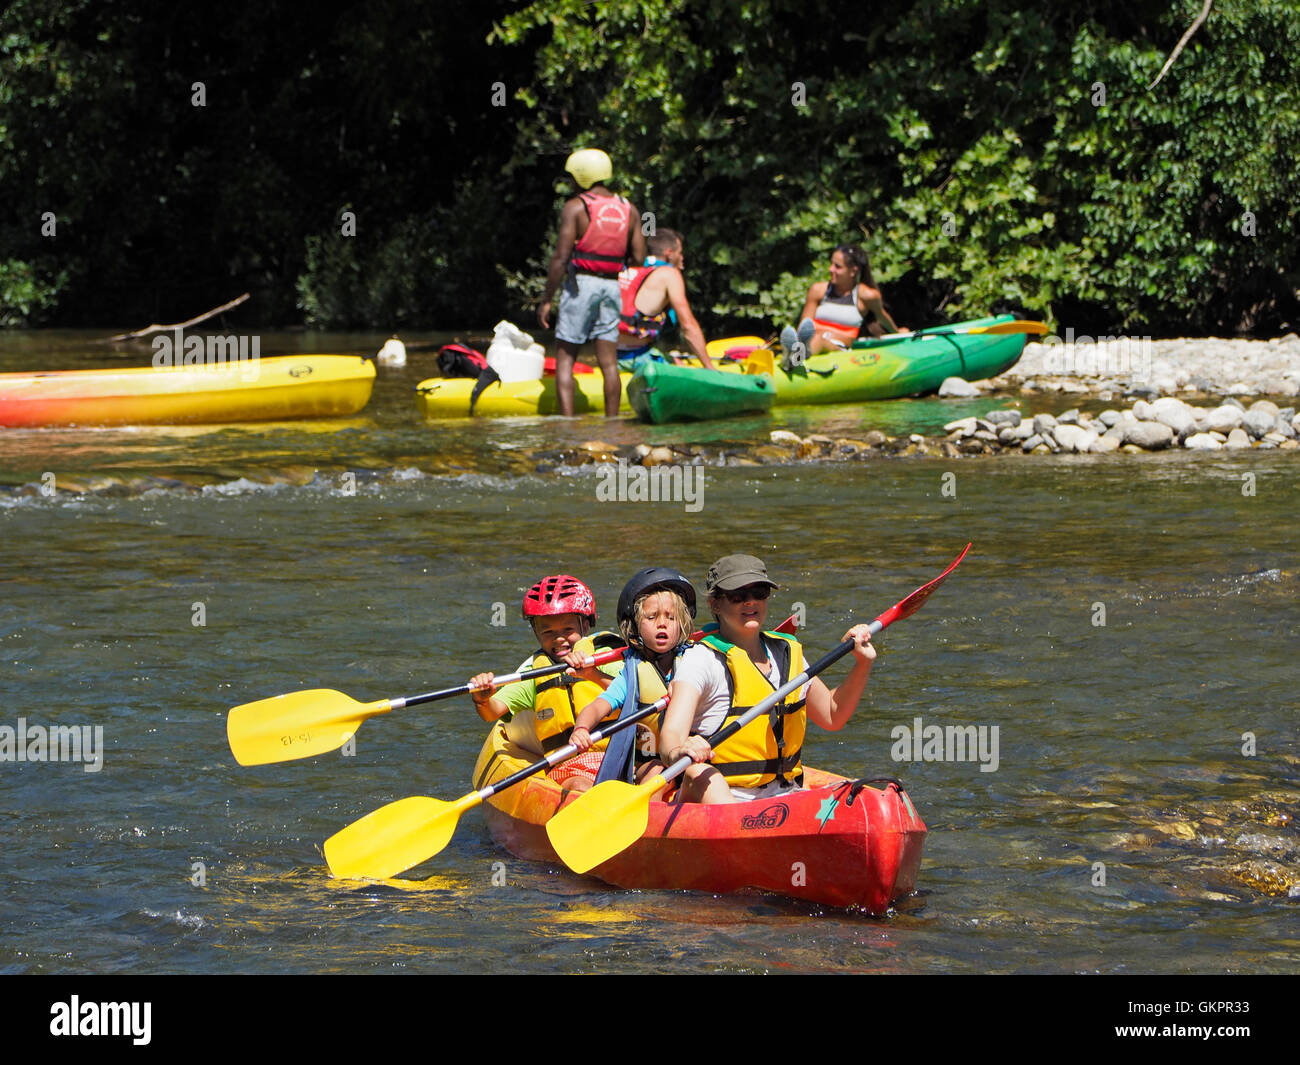 Mother with young children going on a canoeing adventure on the Herault river in the Cevennes region, southern France - Stock Image